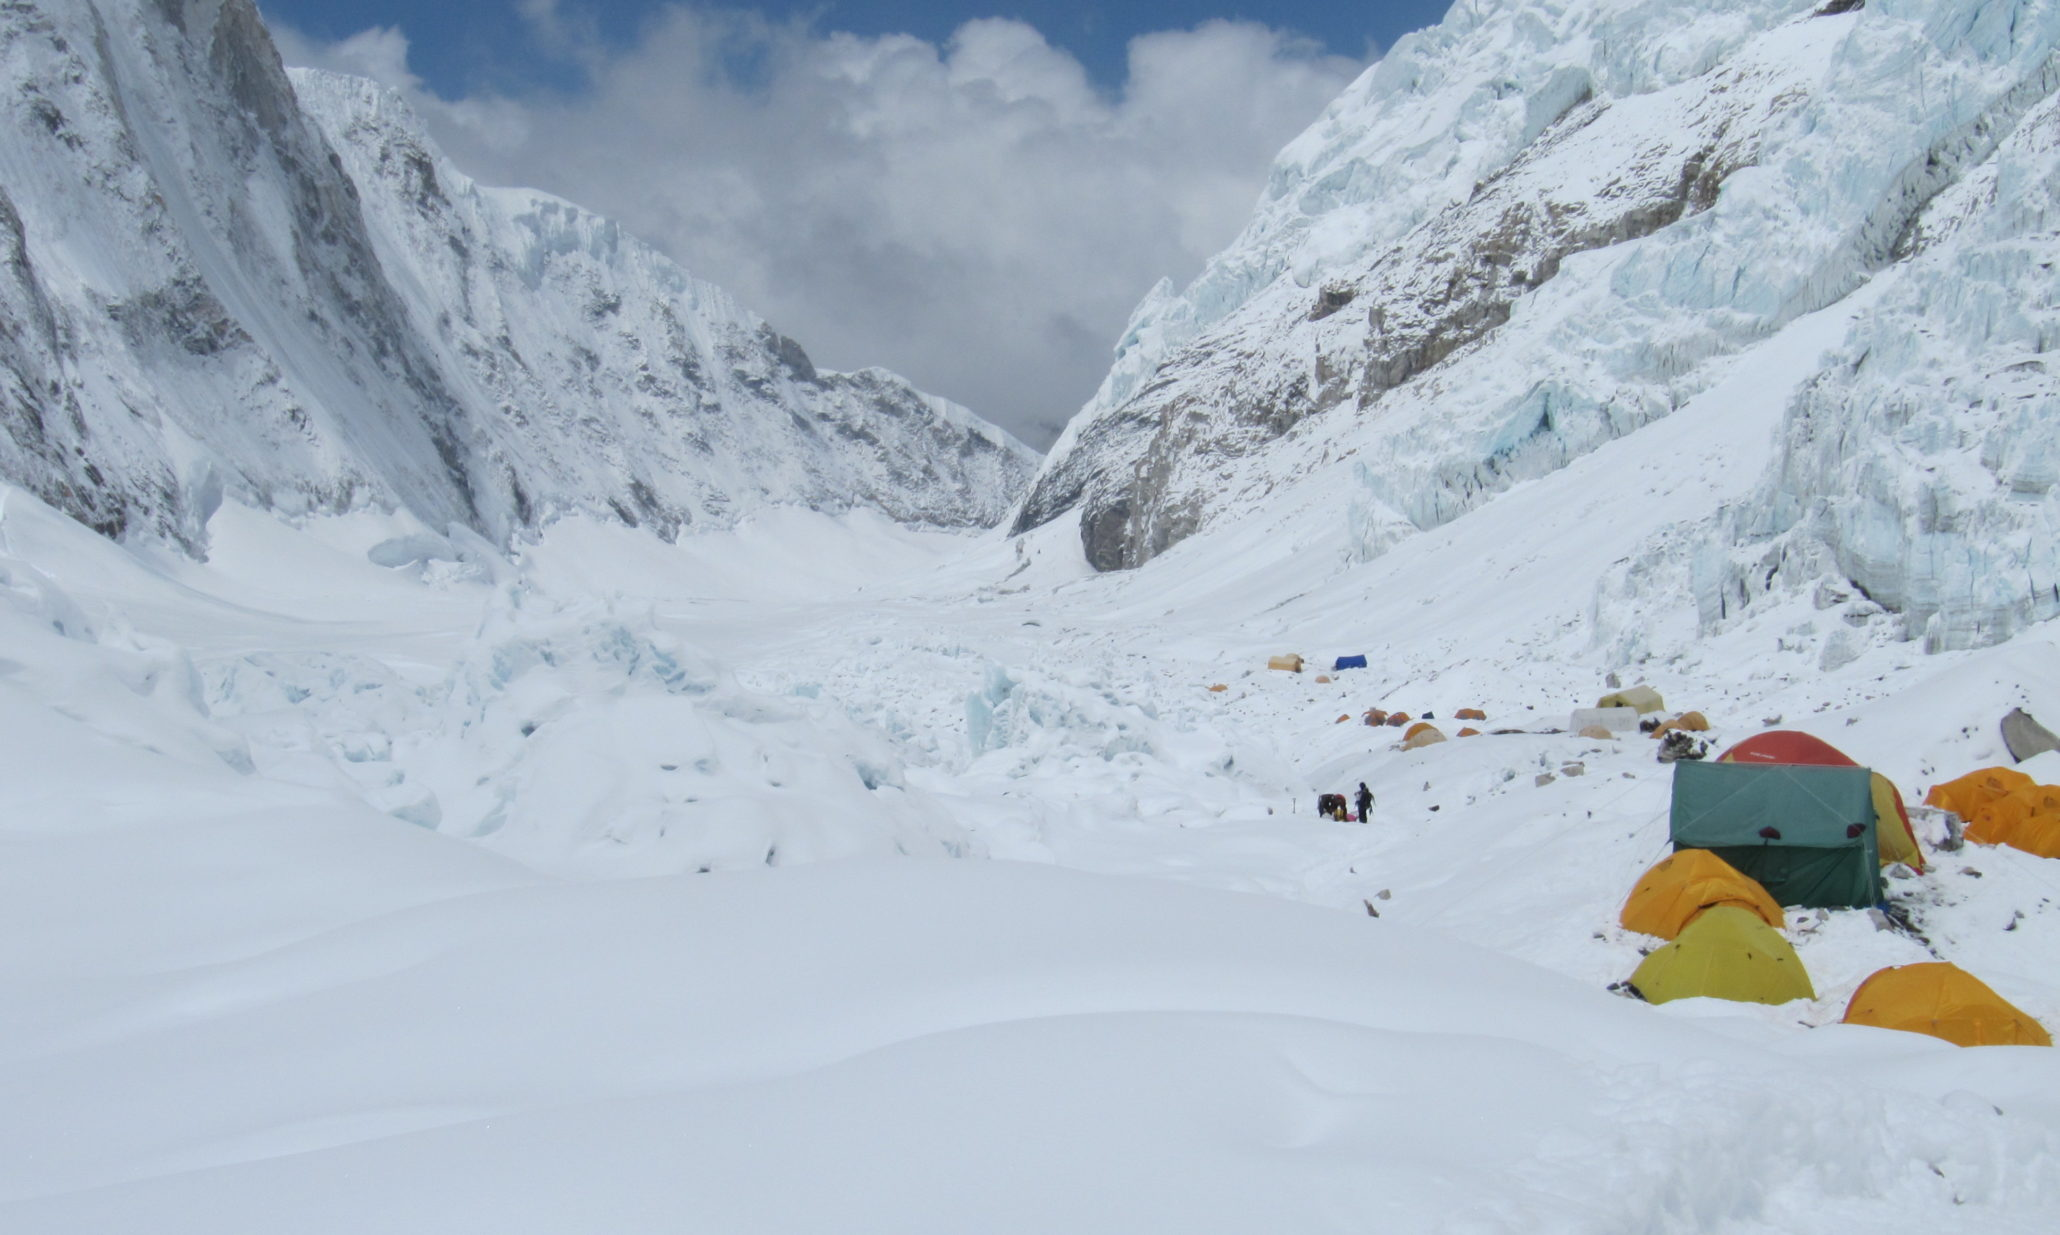 Everest base camp at the mountain covered with snow